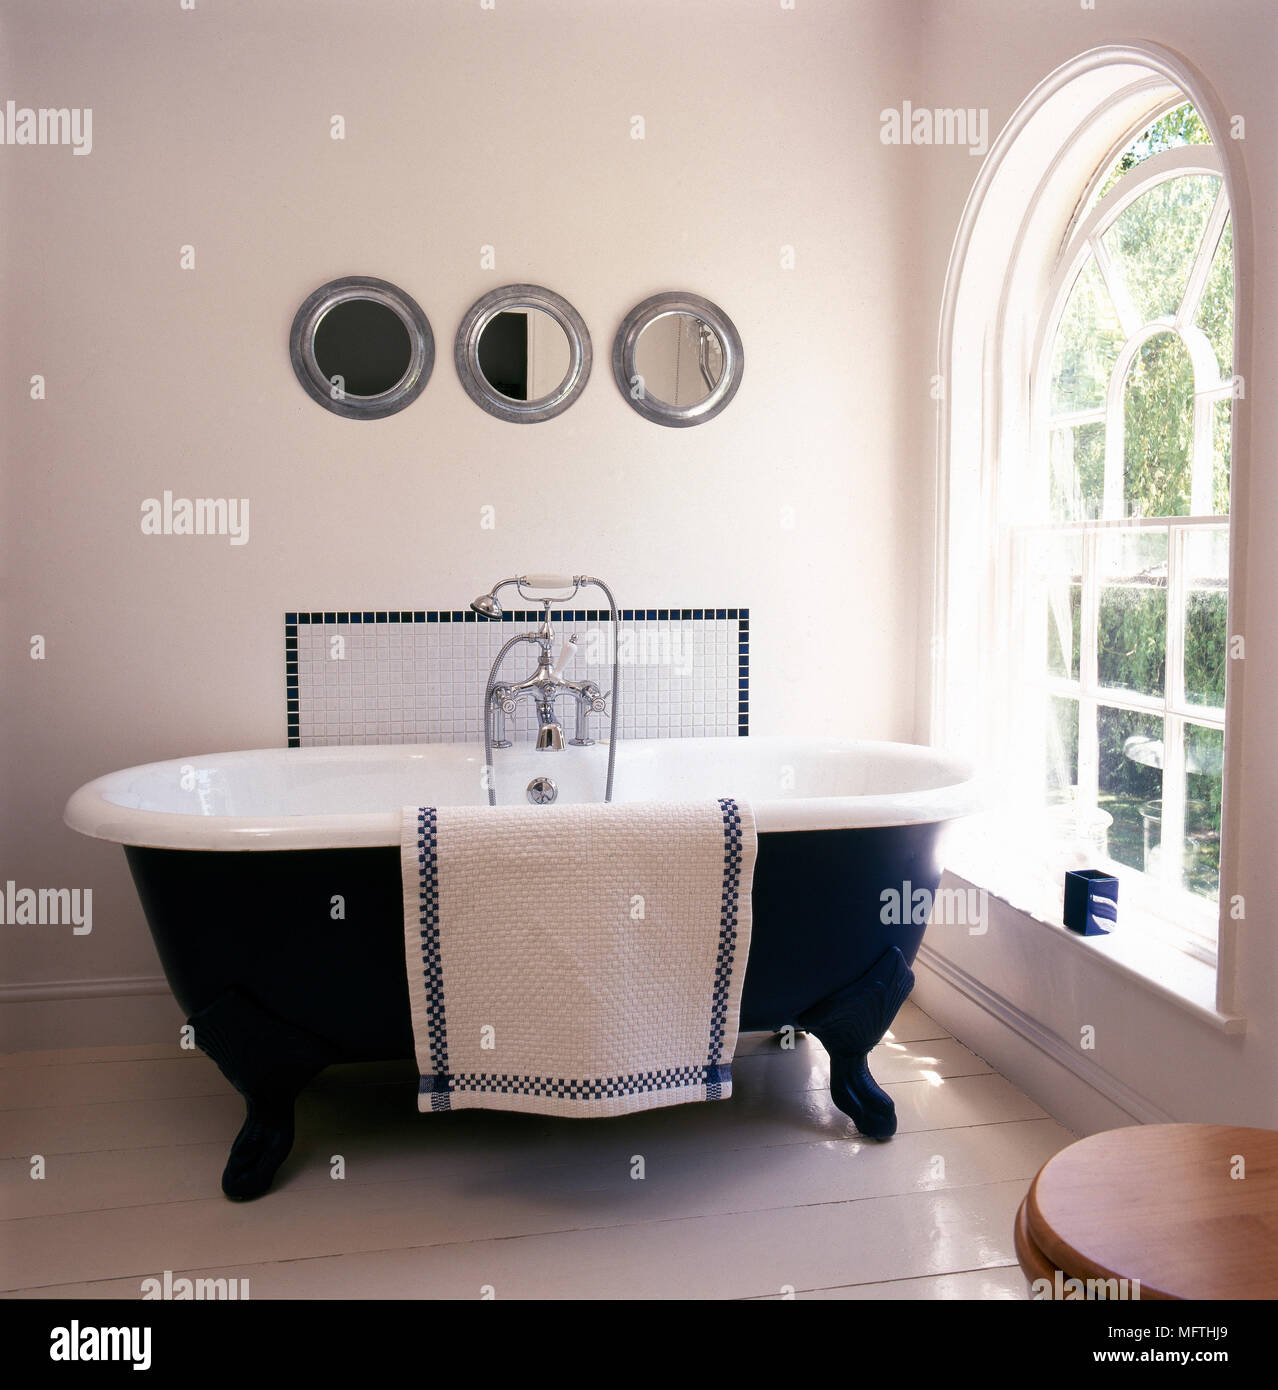 https www alamy com traditional bathroom with painted floorboards arched window freestanding roll top bathtub with mosaic tile backsplash and three circular mirrors image181864209 html